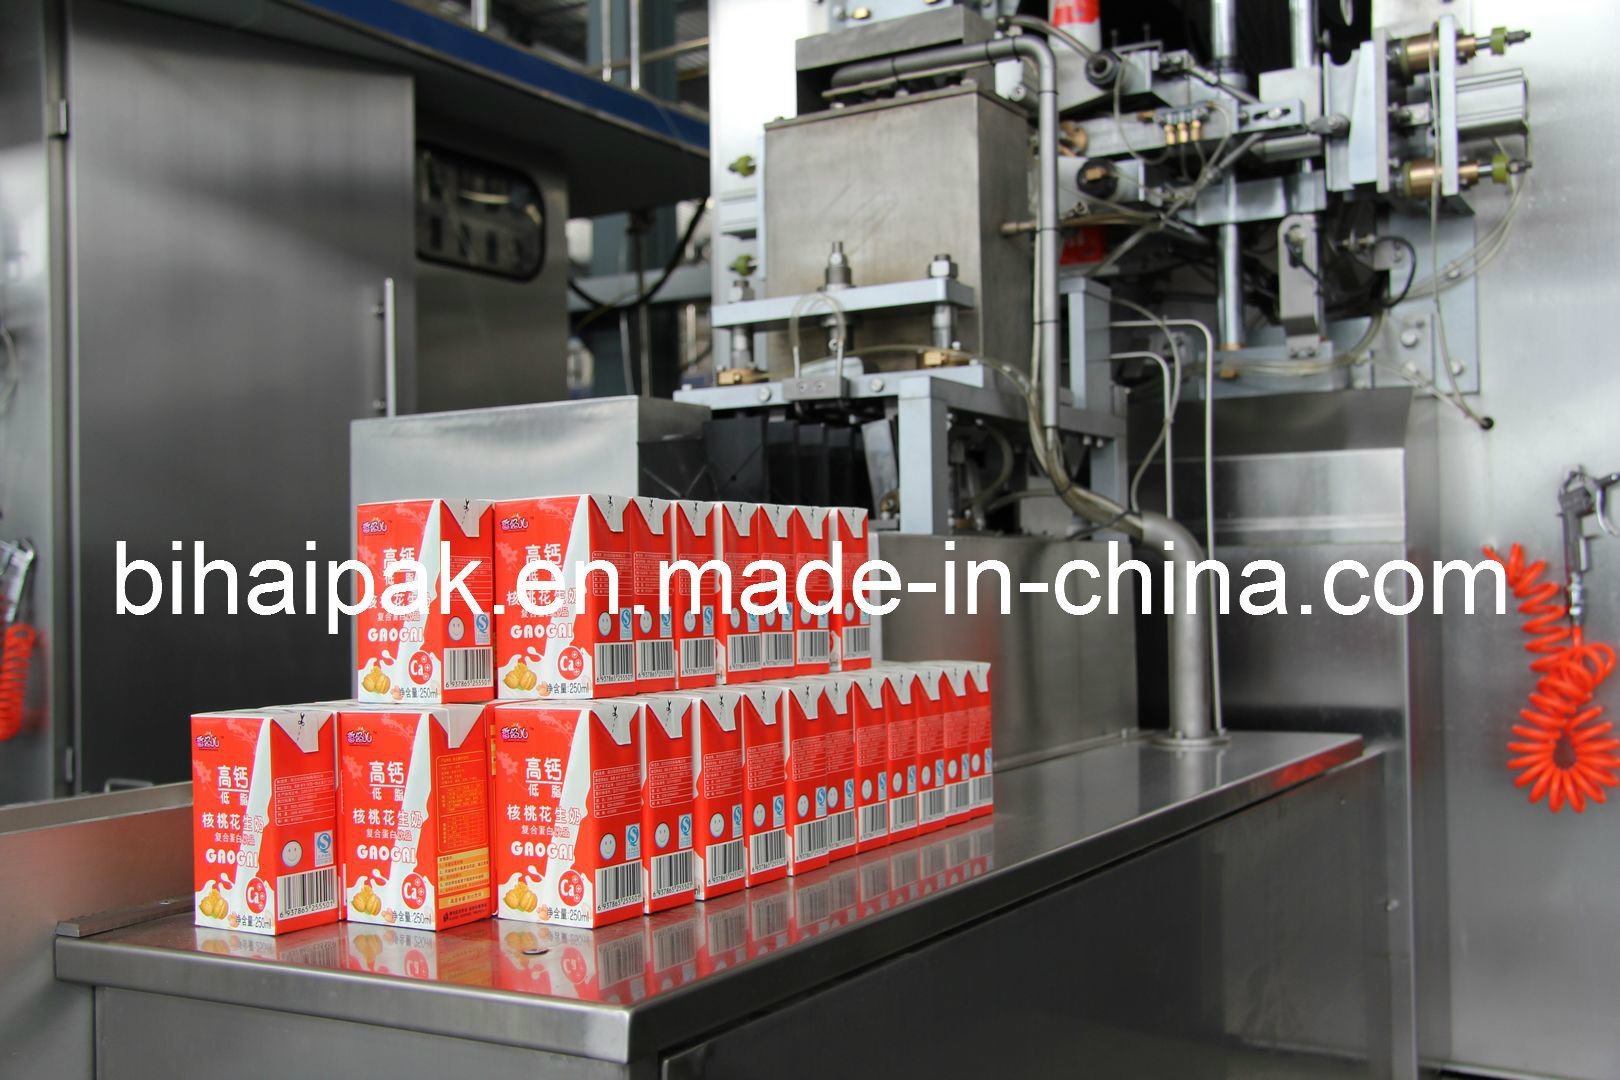 China Bihai Liquid Juice Filling Machine